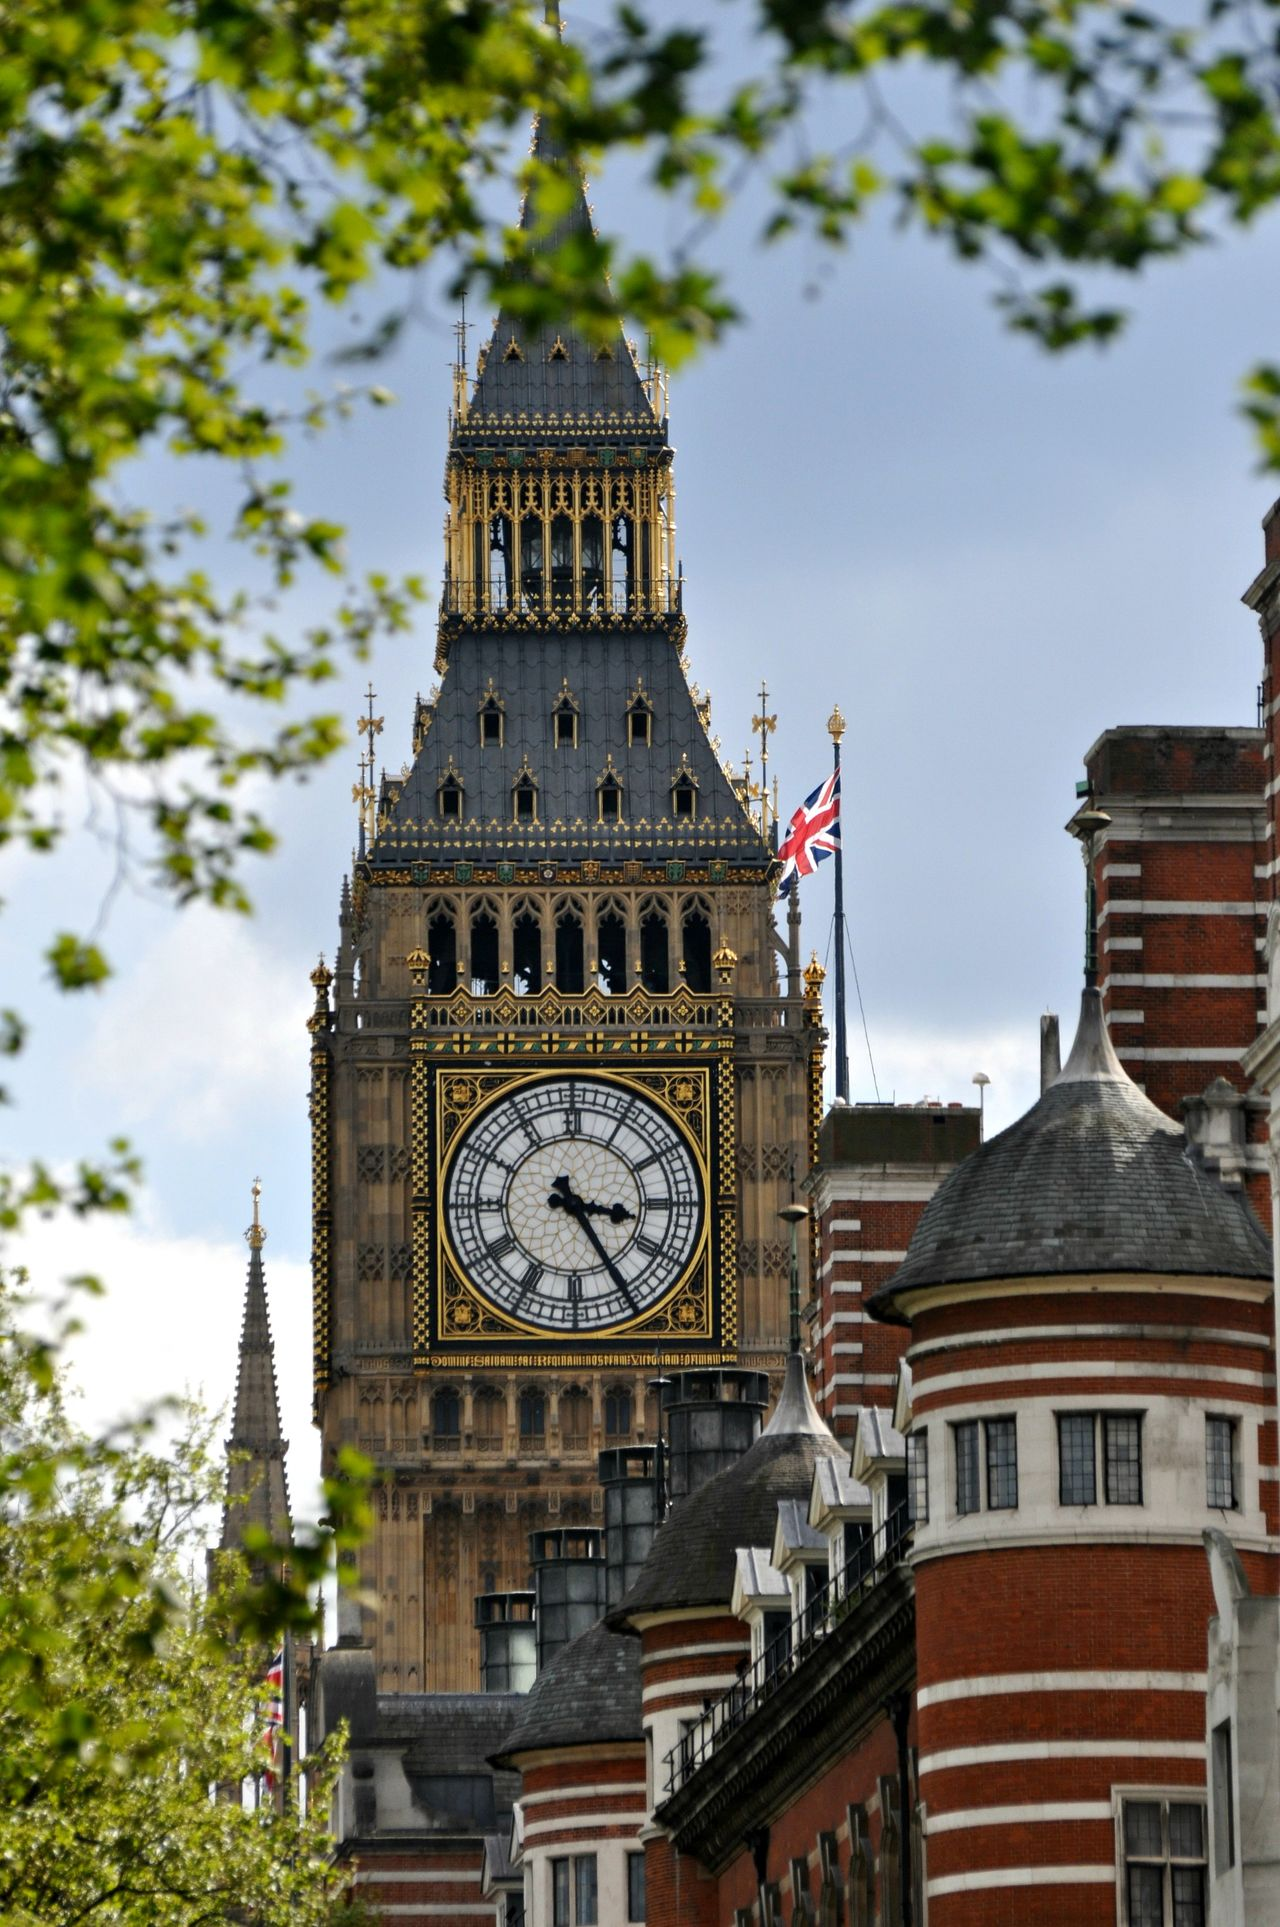 Big Ben clock tower Architecture Big Ben Building Exterior Built Structure City Clock Clock Face Clock Tower Day History London Low Angle View Minute Hand No People Outdoors Roman Numeral Sky Time Tower Travel Destinations Tree